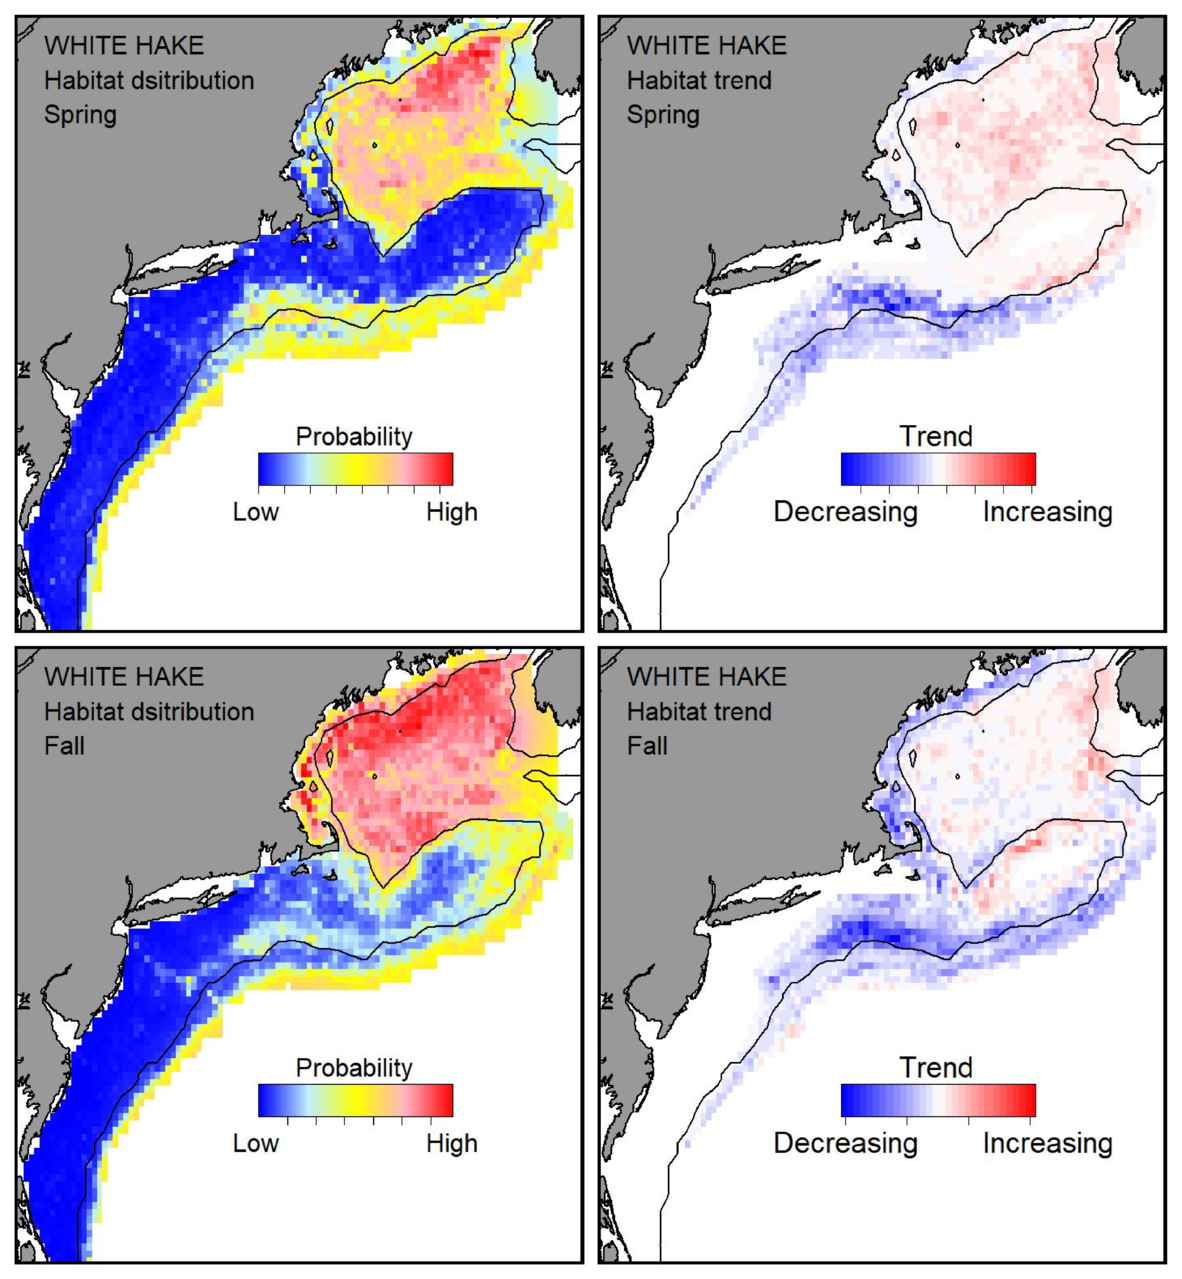 Top row: Probable habitat distribution for white hake showing the highest concentration and increasing trend in the Gulf of Maine during the spring. Bottom row: Probable habitat distribution for white hake showing the highest concentration and increasing trend in the Gulf of Maine during the fall.